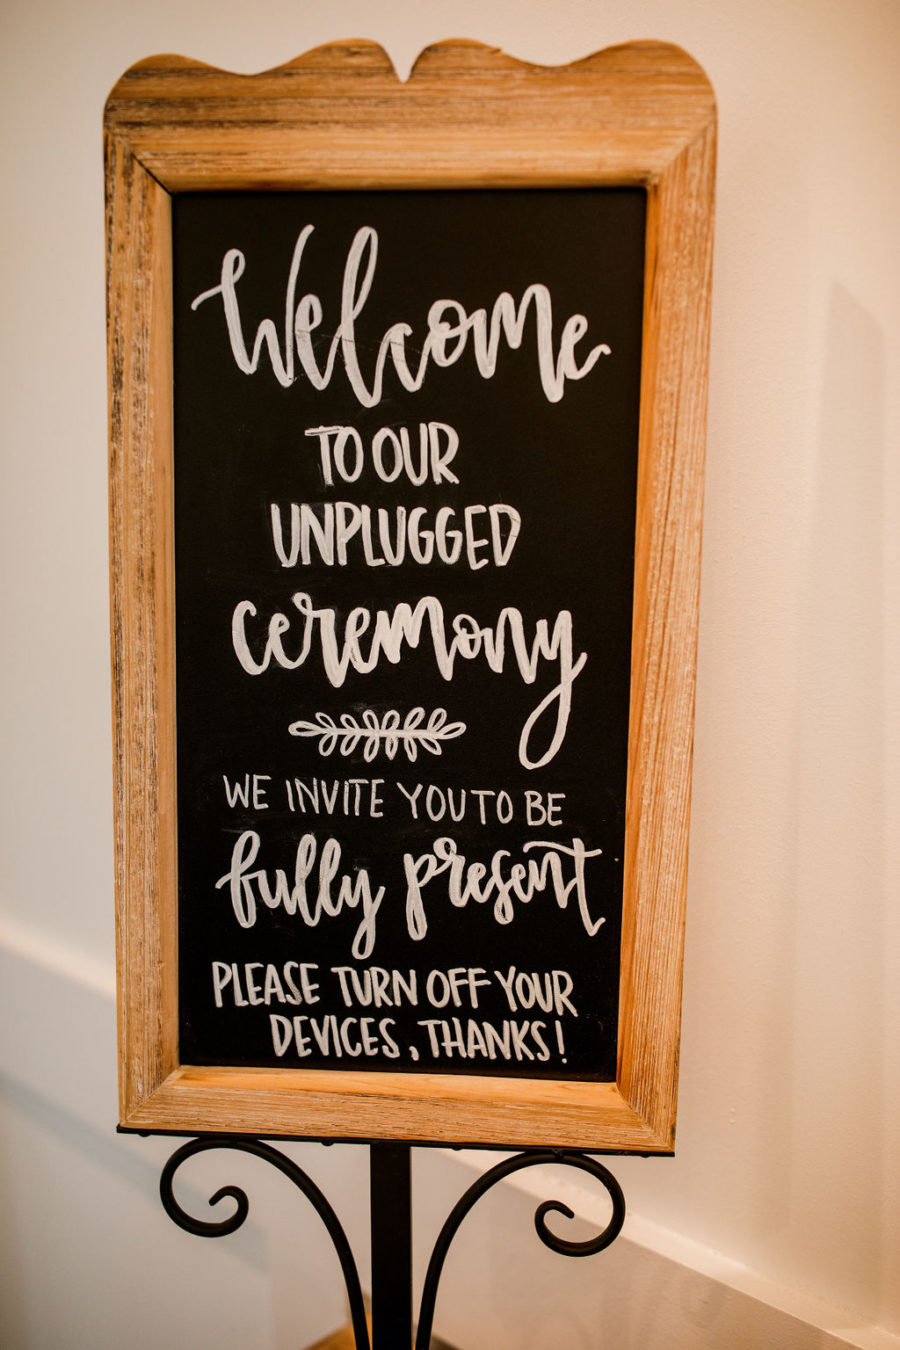 Wedding Ceremony Sign: Beautiful Graystone Quarry Wedding captured by John Myers Photography & Videography